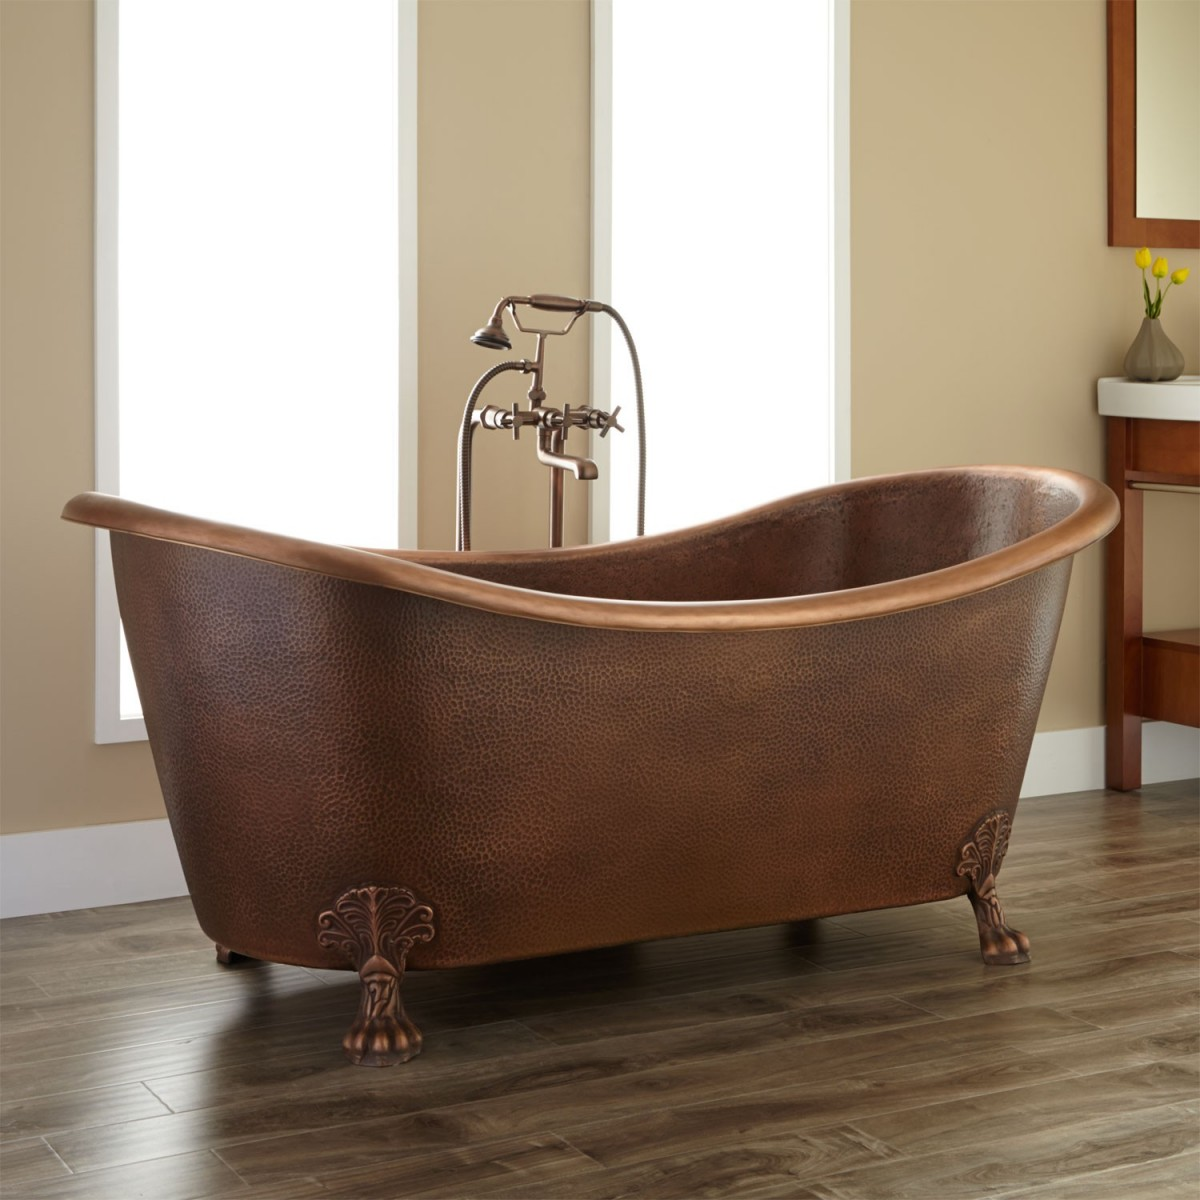 The elegance and charm of the clawfoot bathtub for Copper claw foot tub